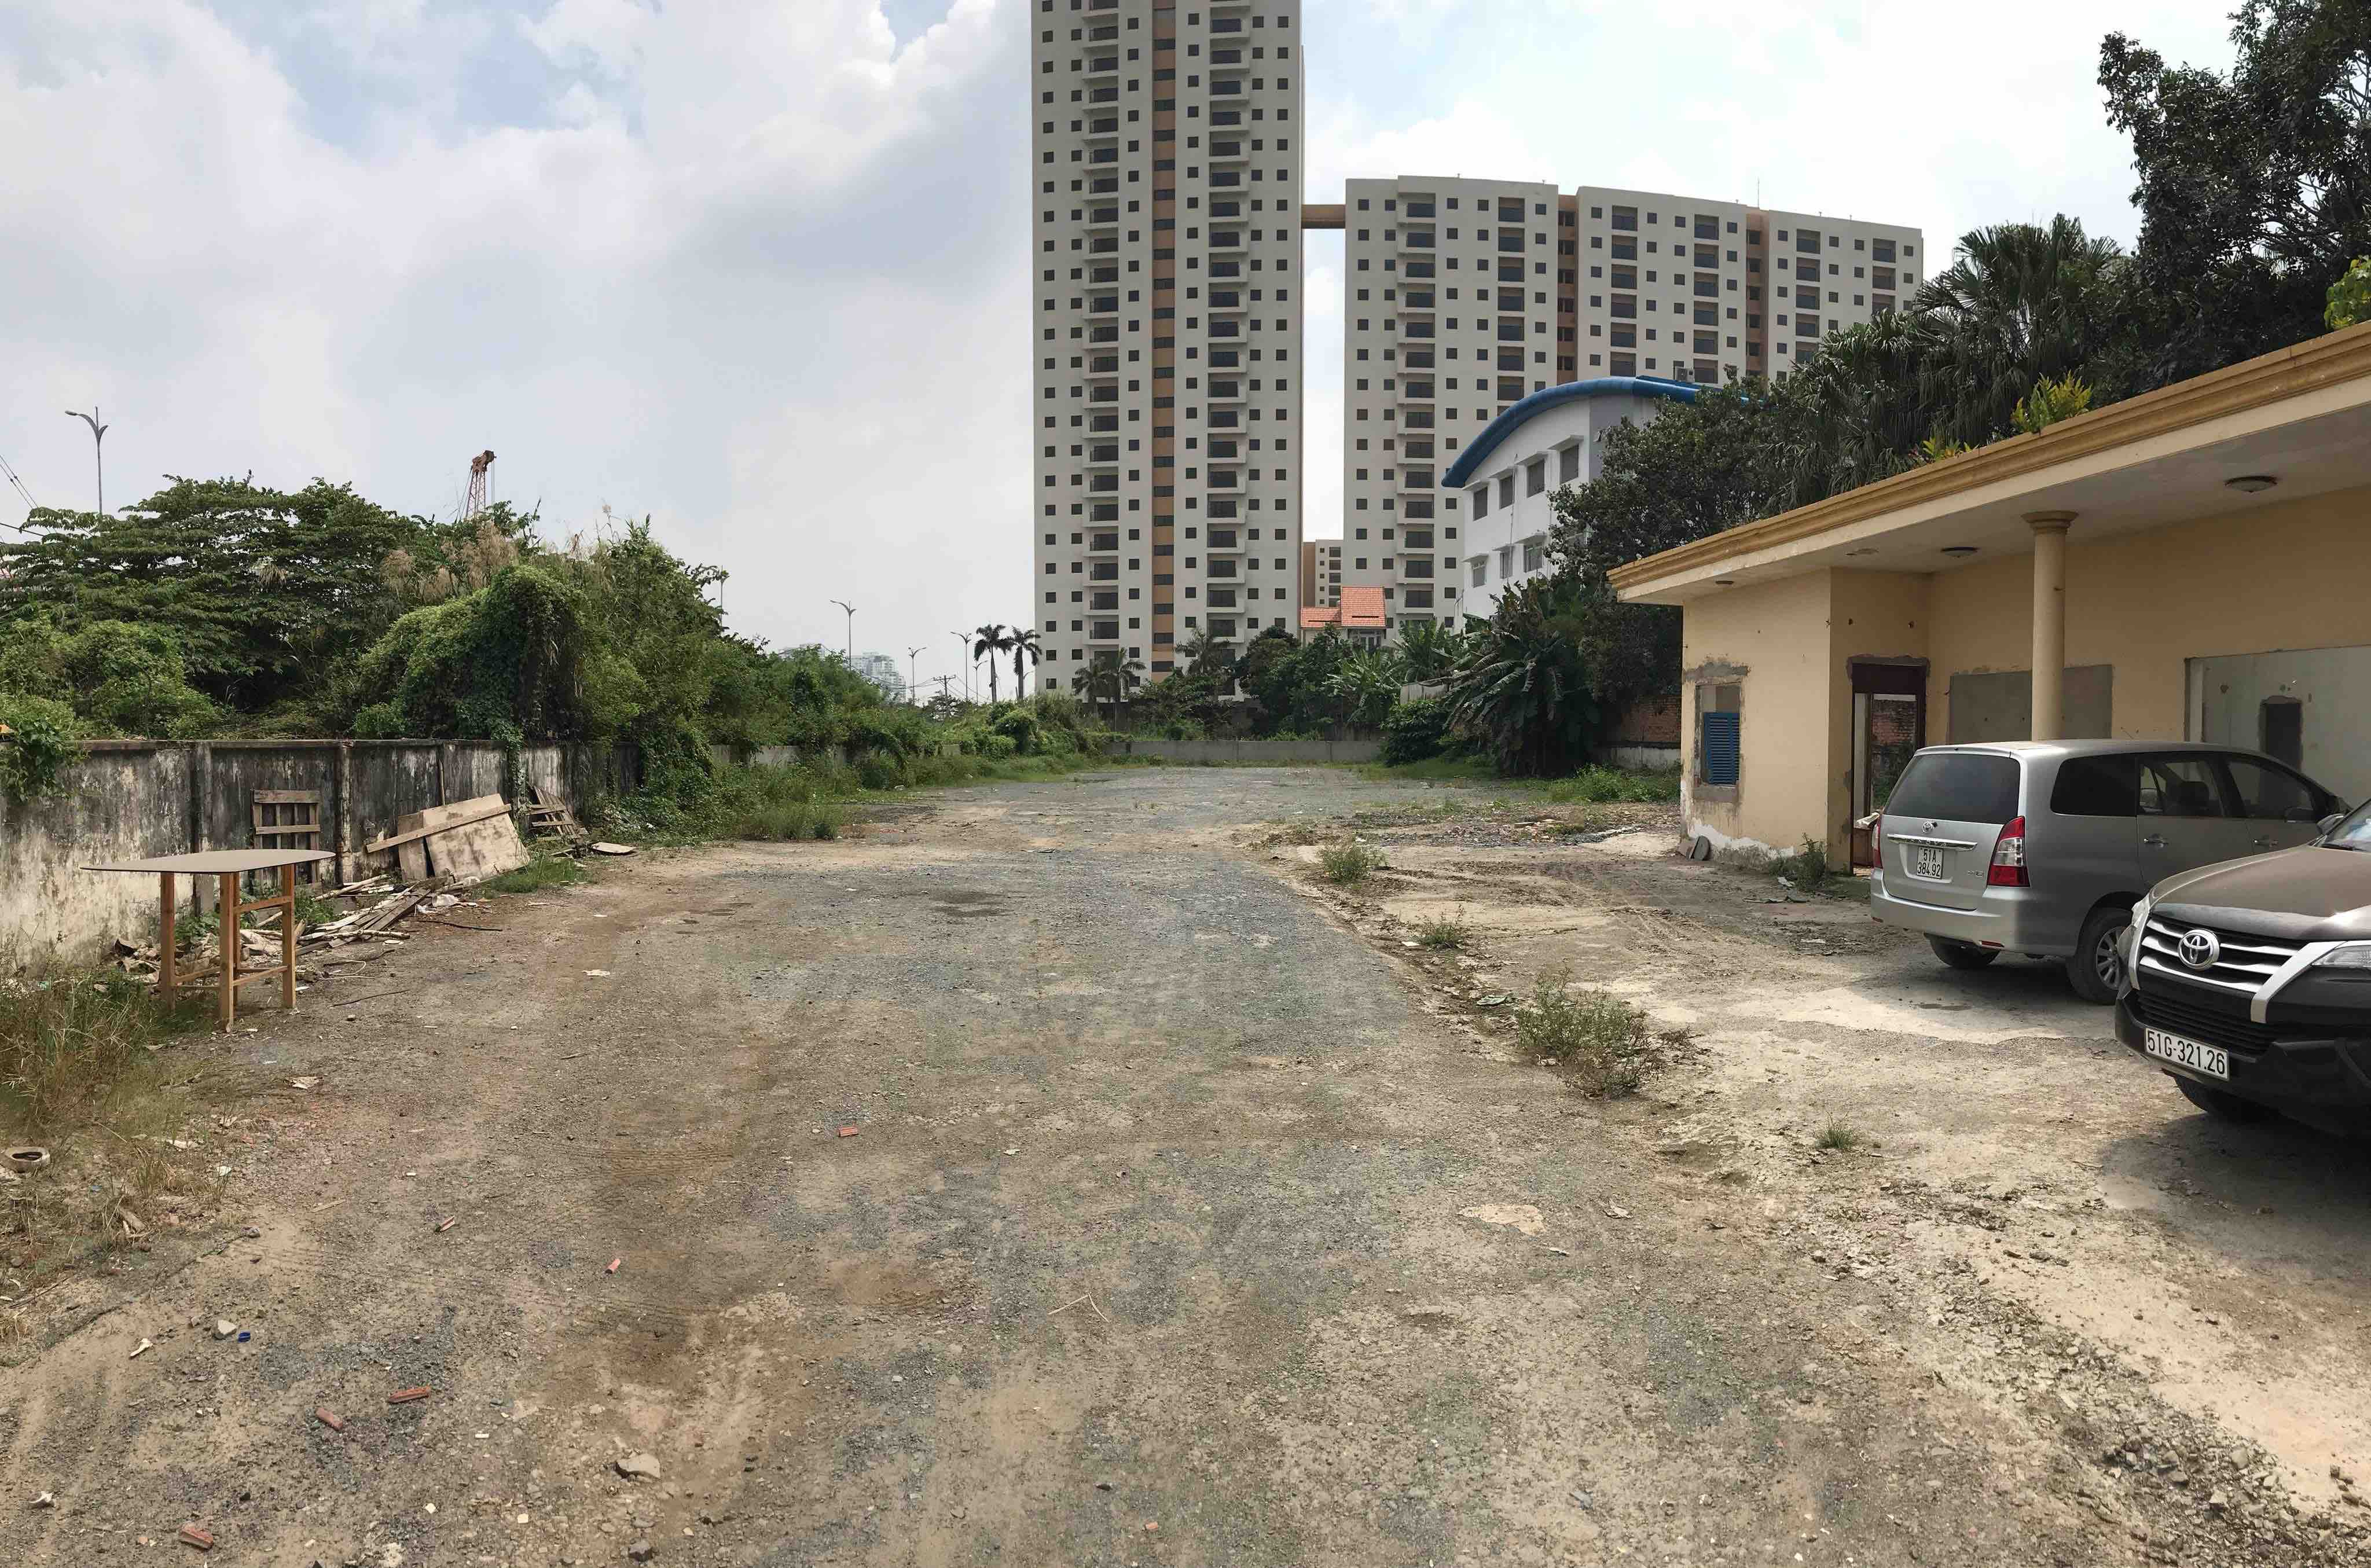 Selling land in Luong Dinh Cua street, Binh Khanh ward, District 2.